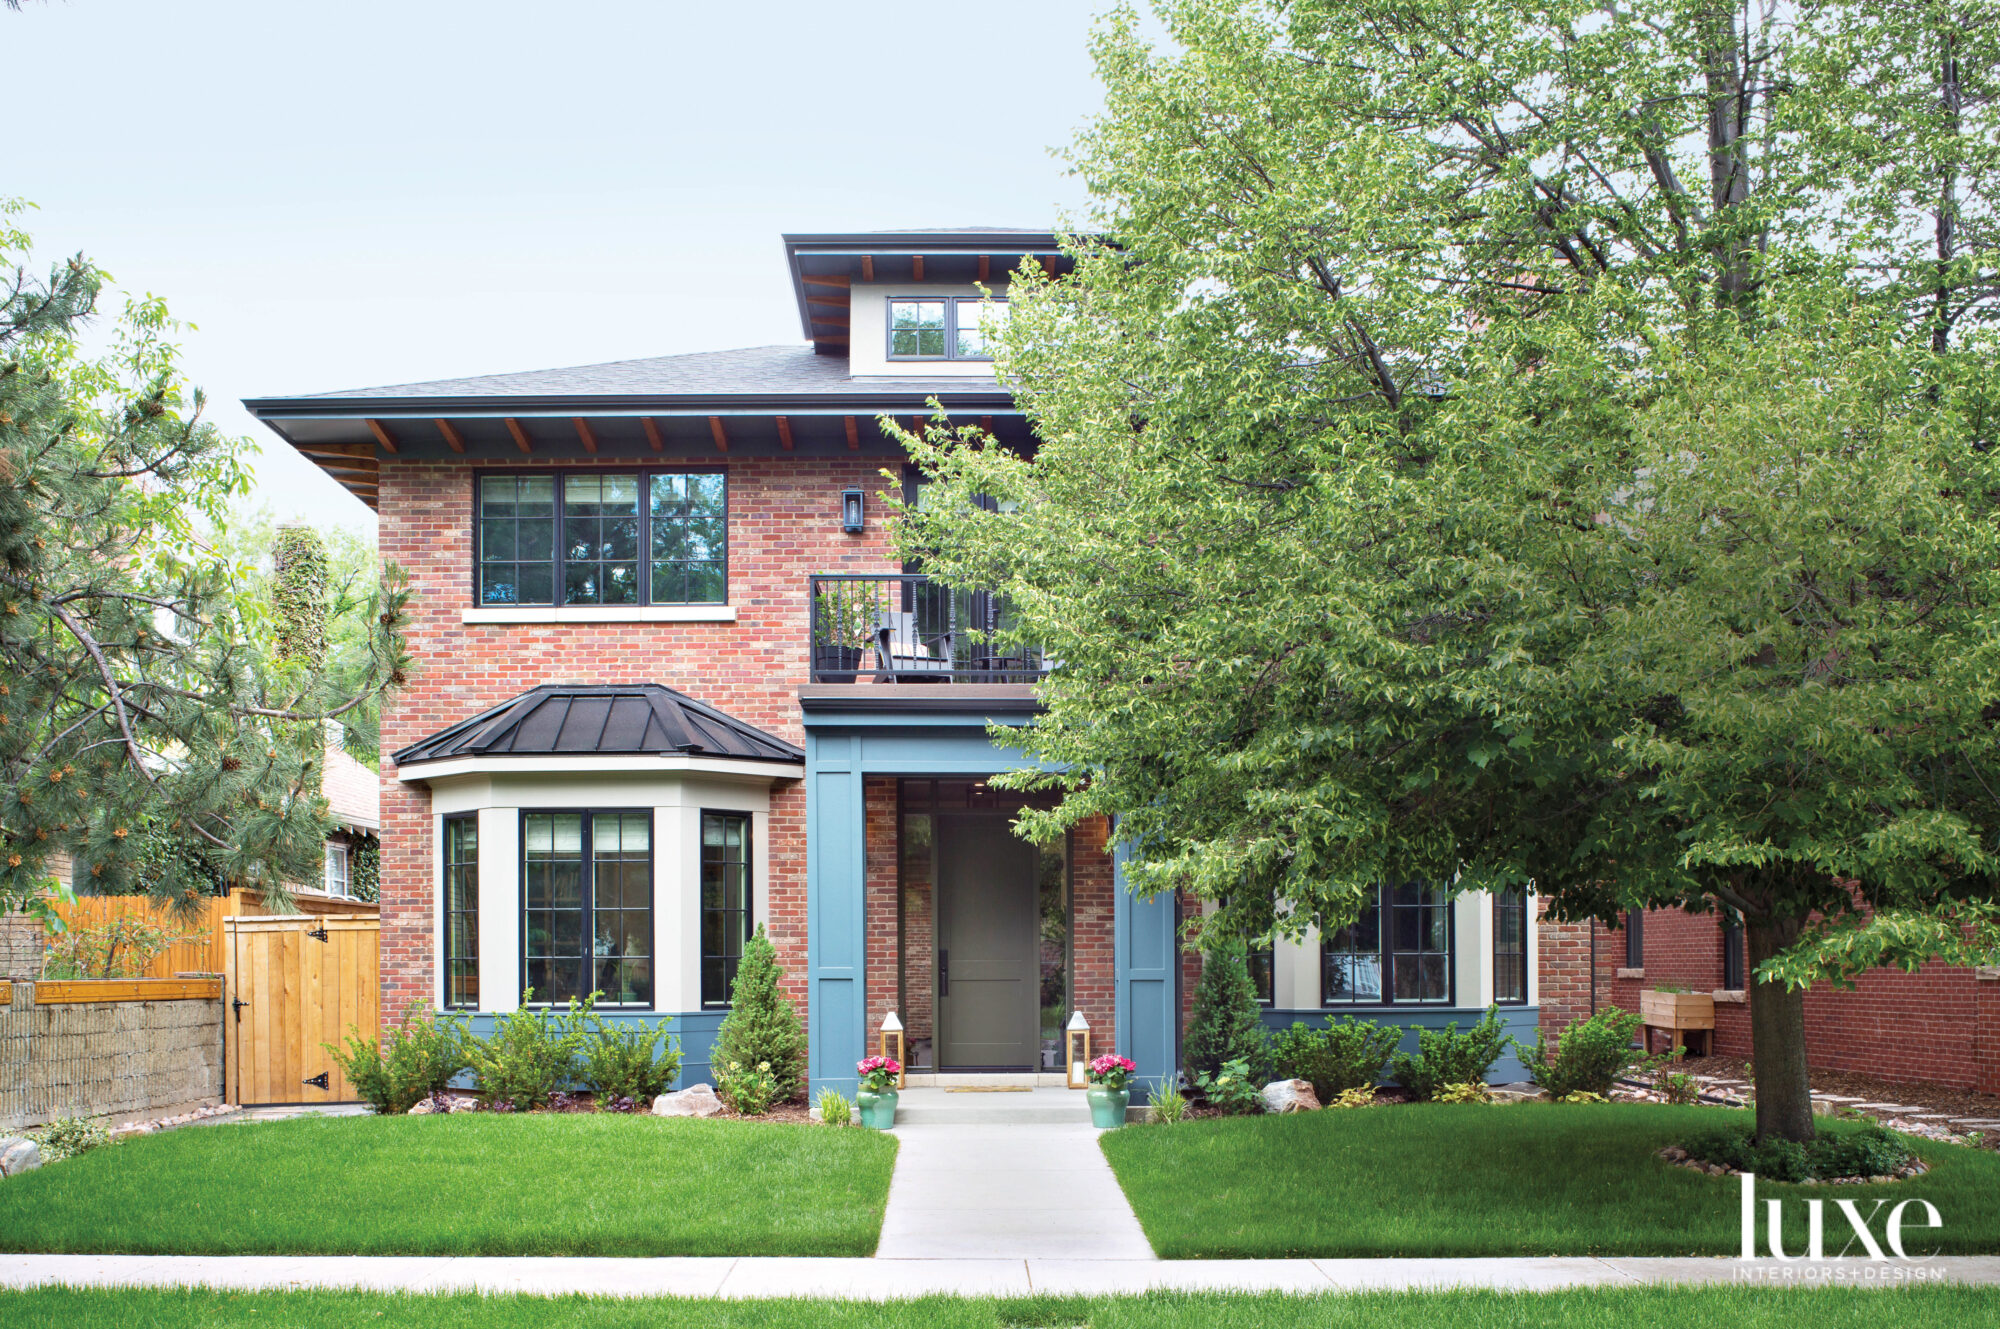 This Denver home has a brick exterior and an entrance with blue molding.